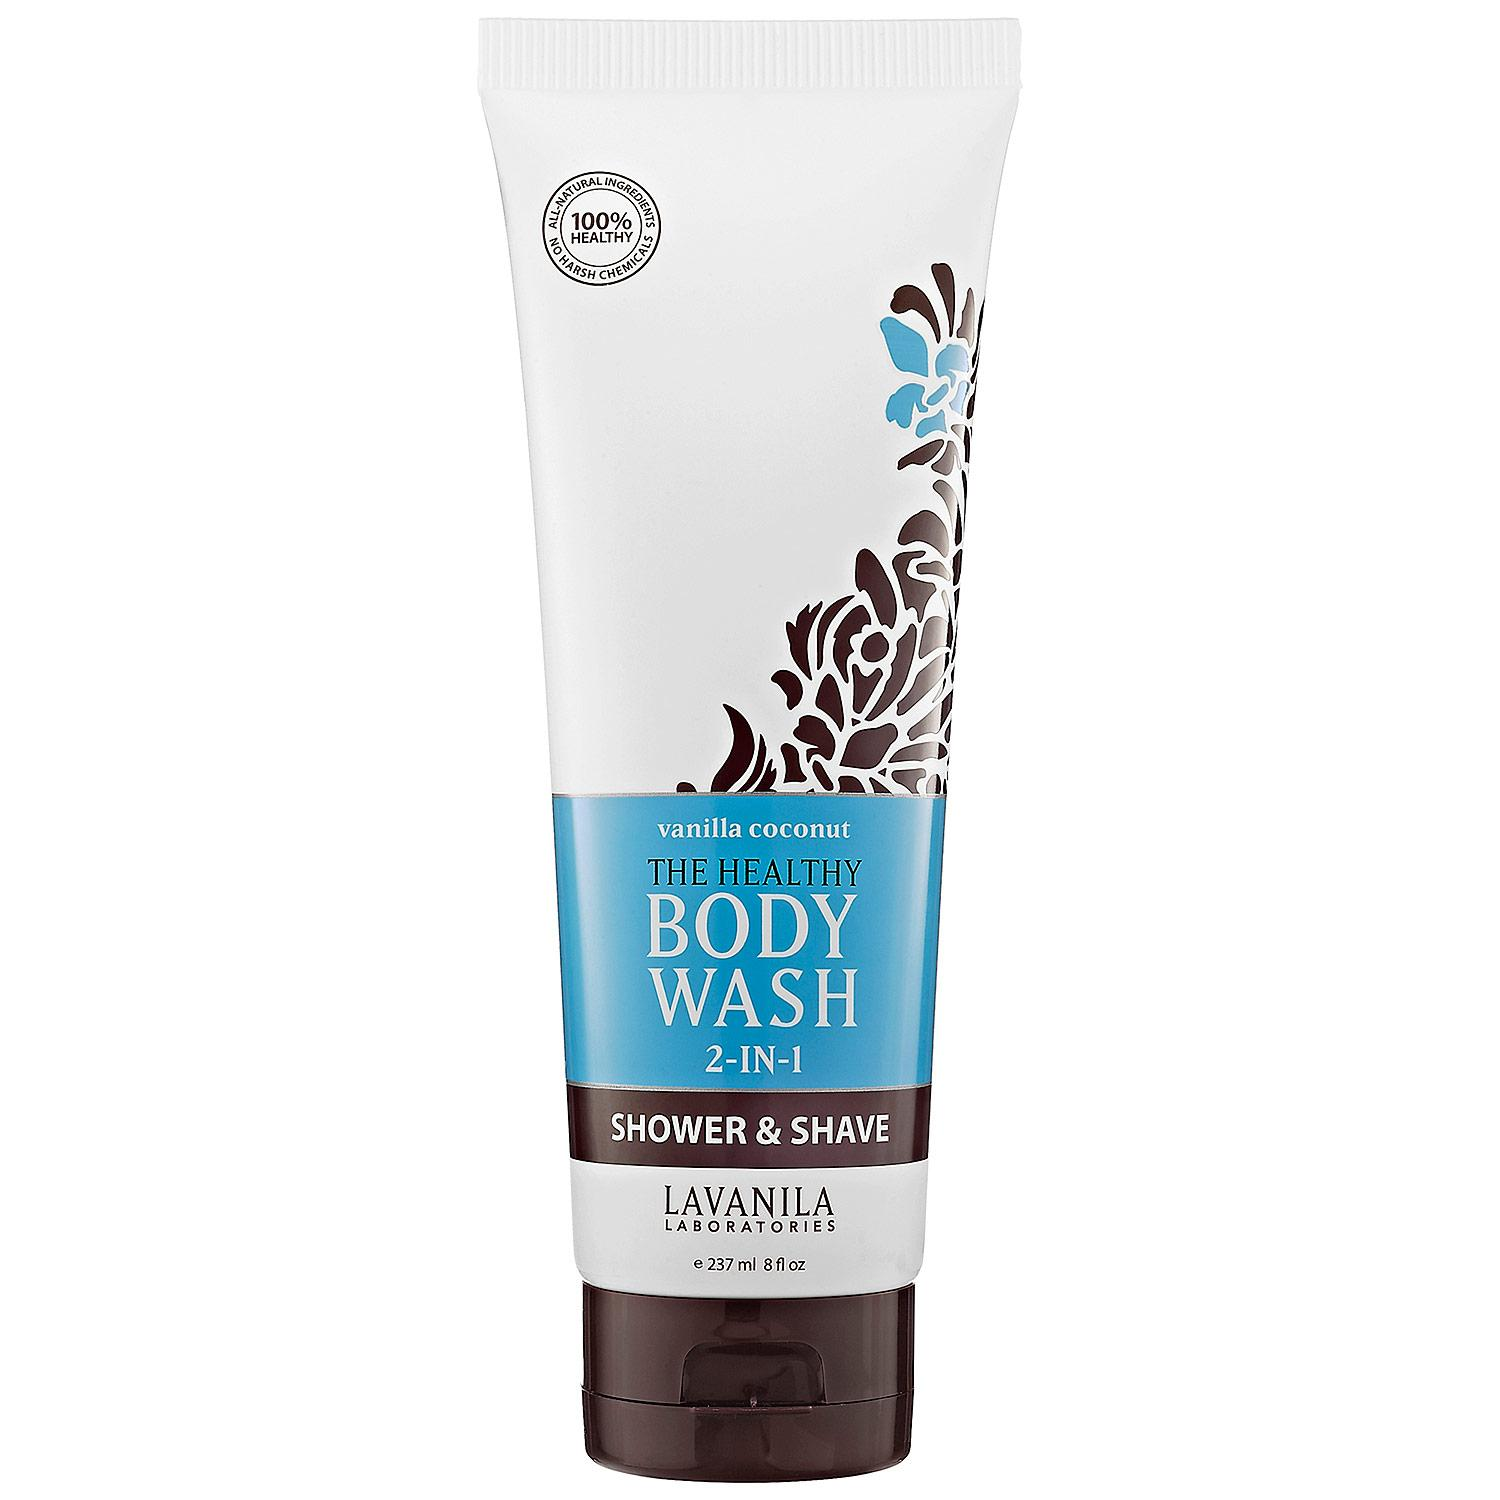 The Healthy Body Wash 2-In-1 Shower & Shave